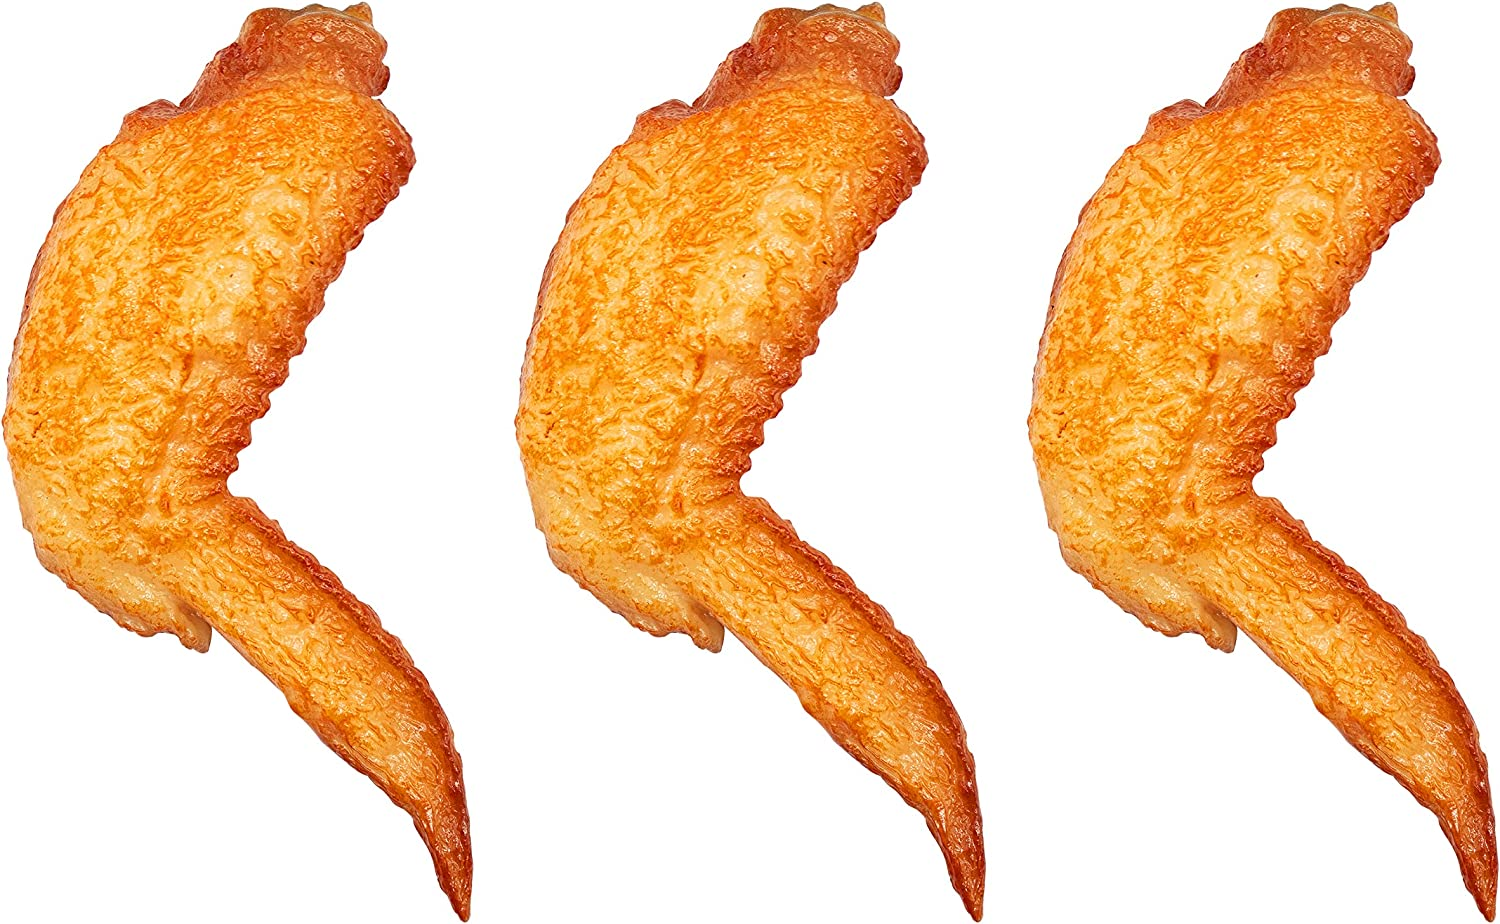 Simulated Chicken Wings Fake Food Model for Kitchen Home Party Decoration Food Sample Display Prop